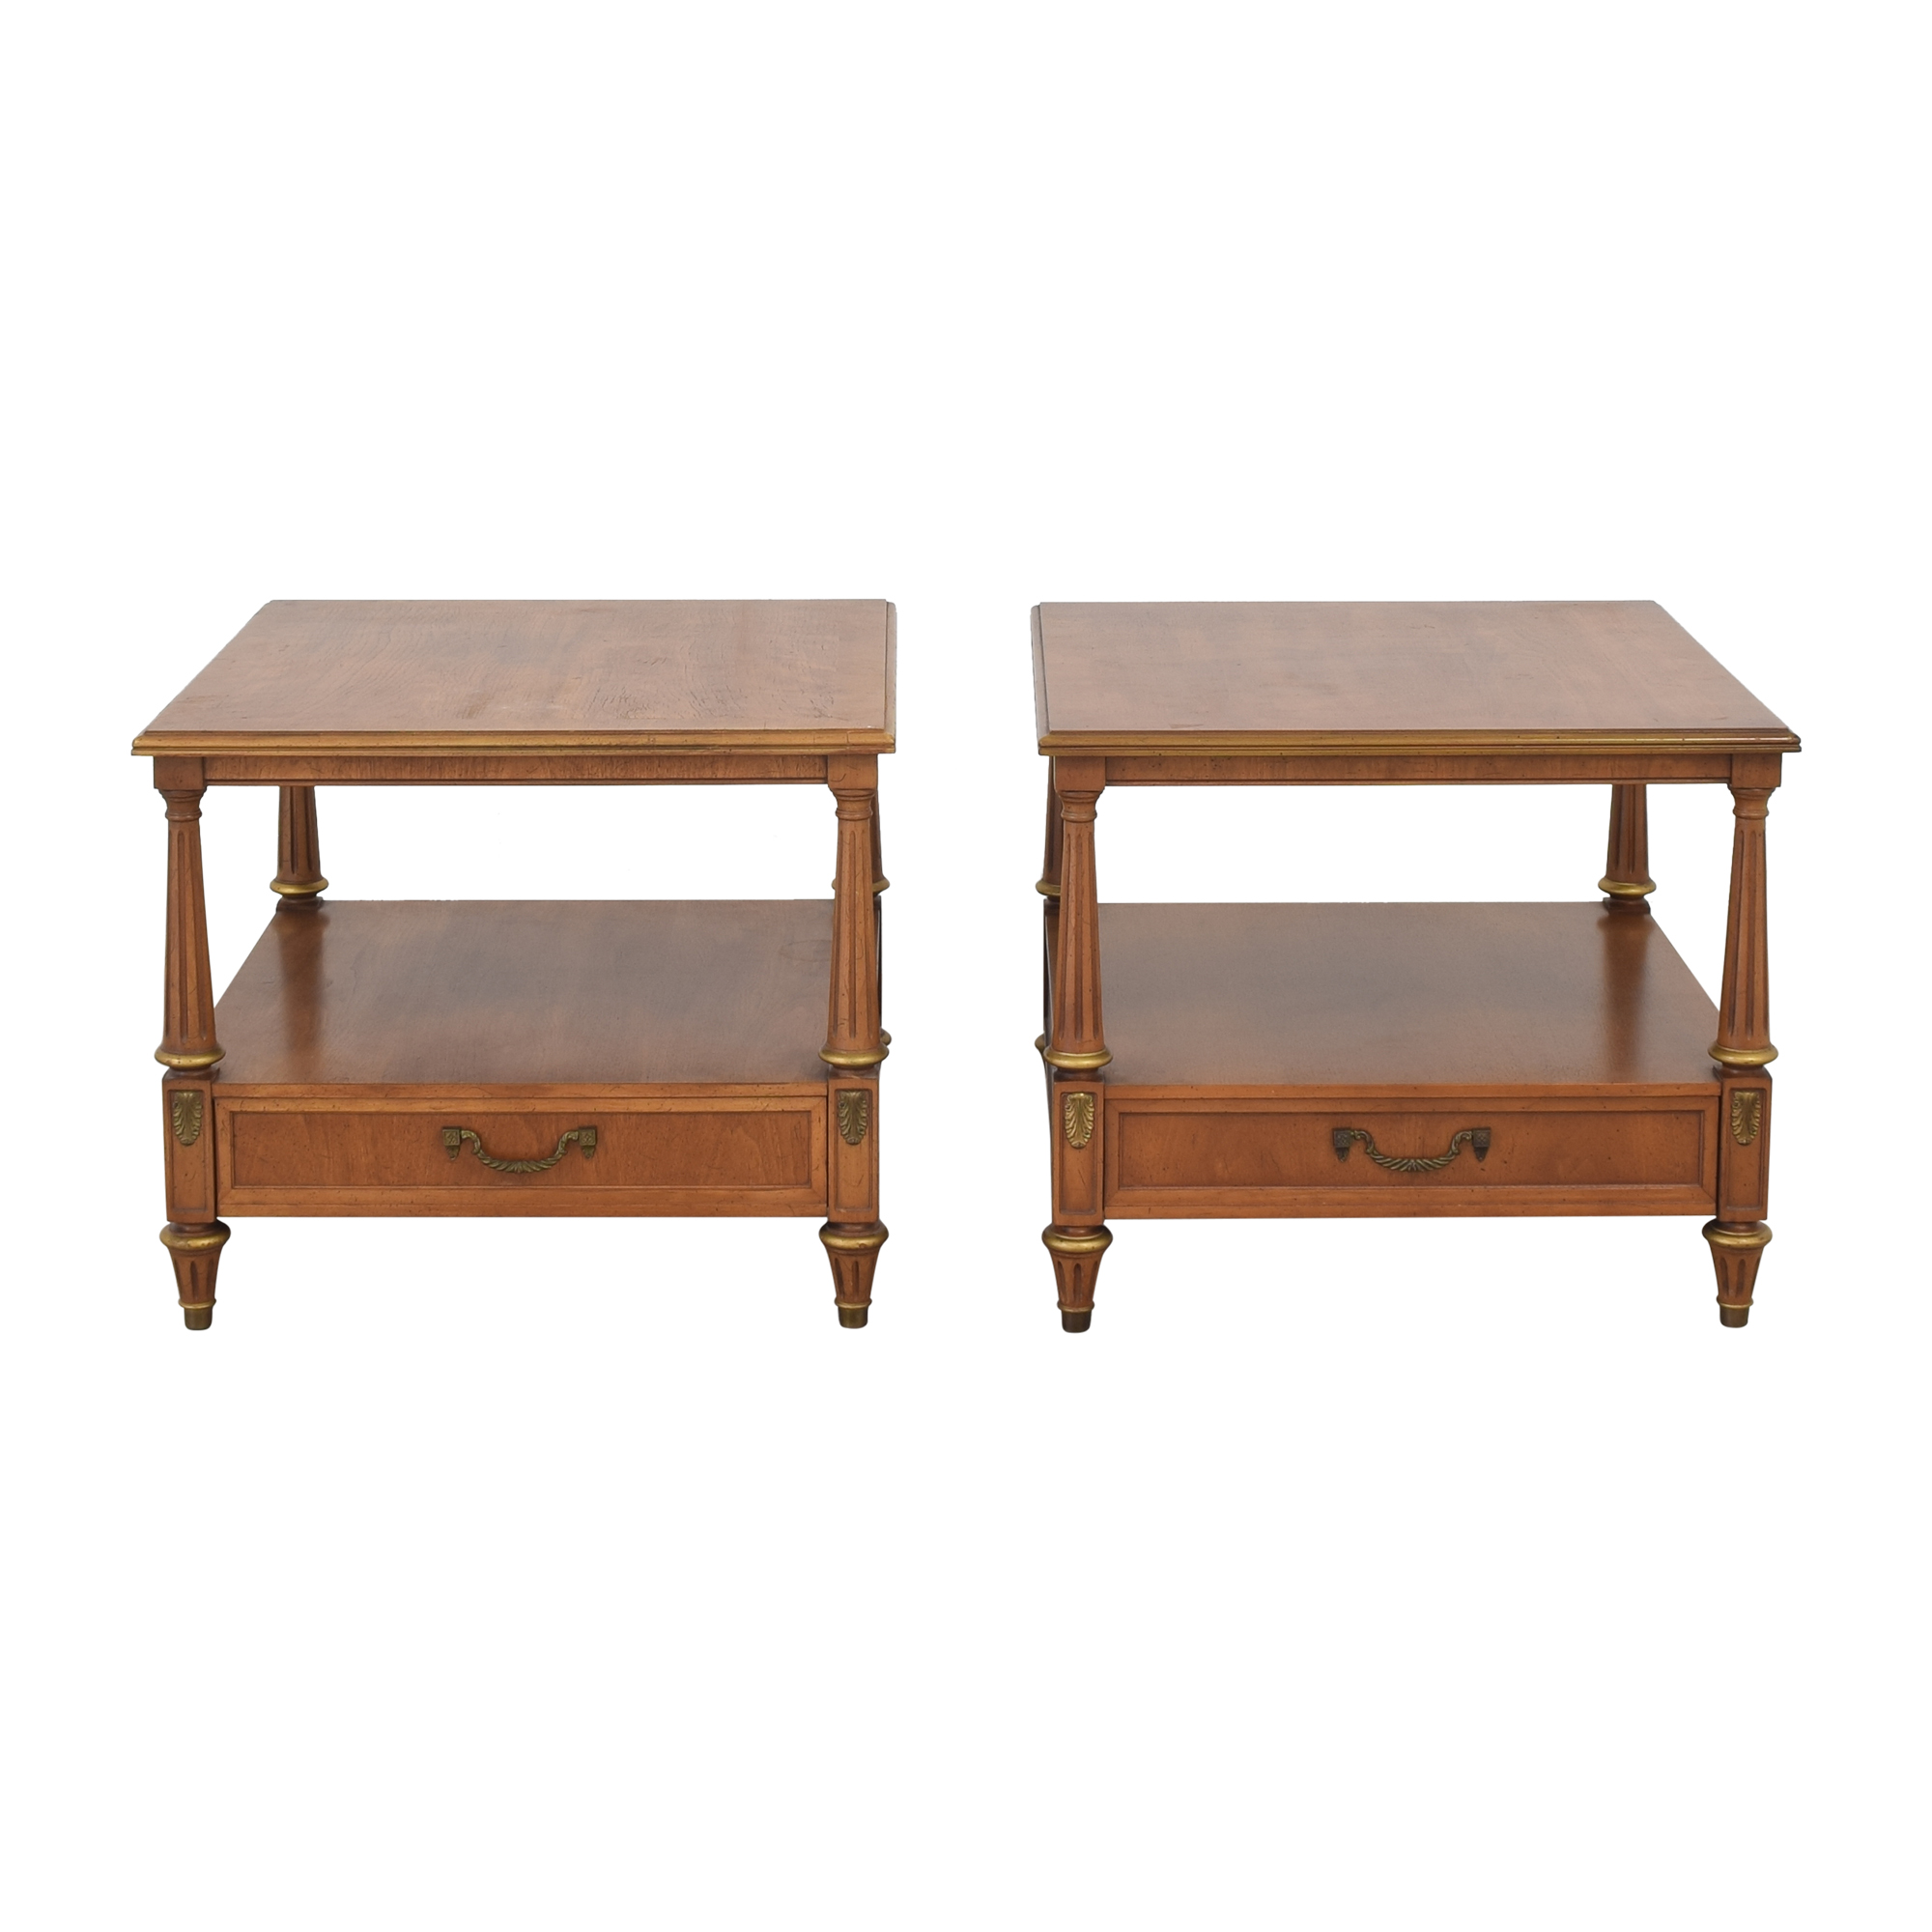 Henredon Furniture Henredon Two Tier End Tables pa